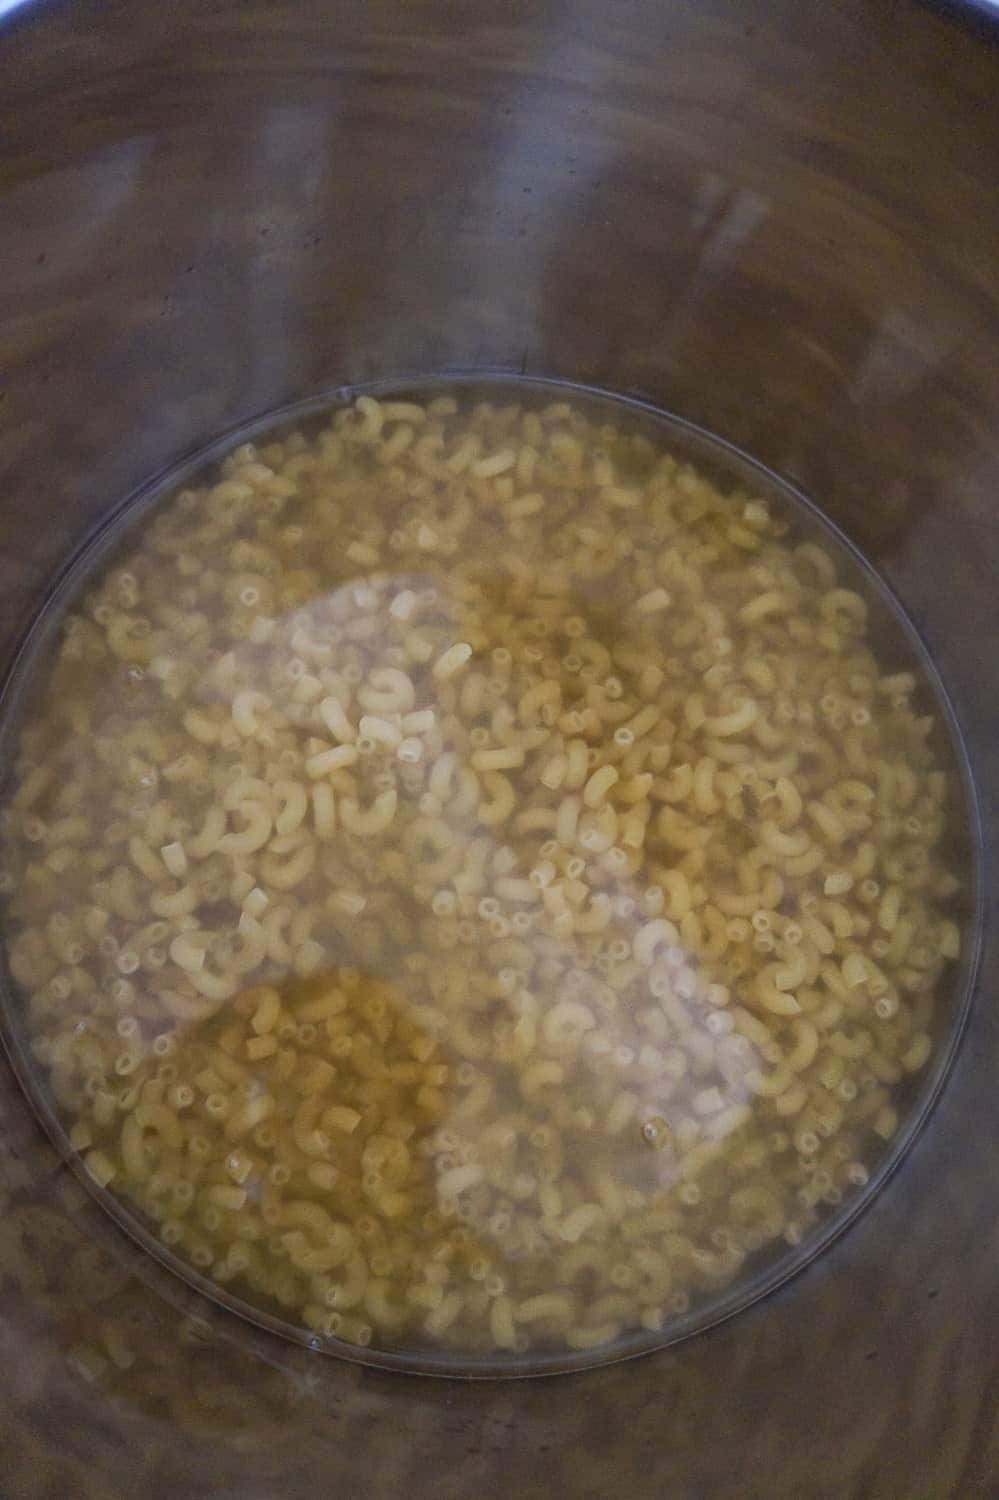 uncooked macaroni submerged in liquid in an Instant Pot